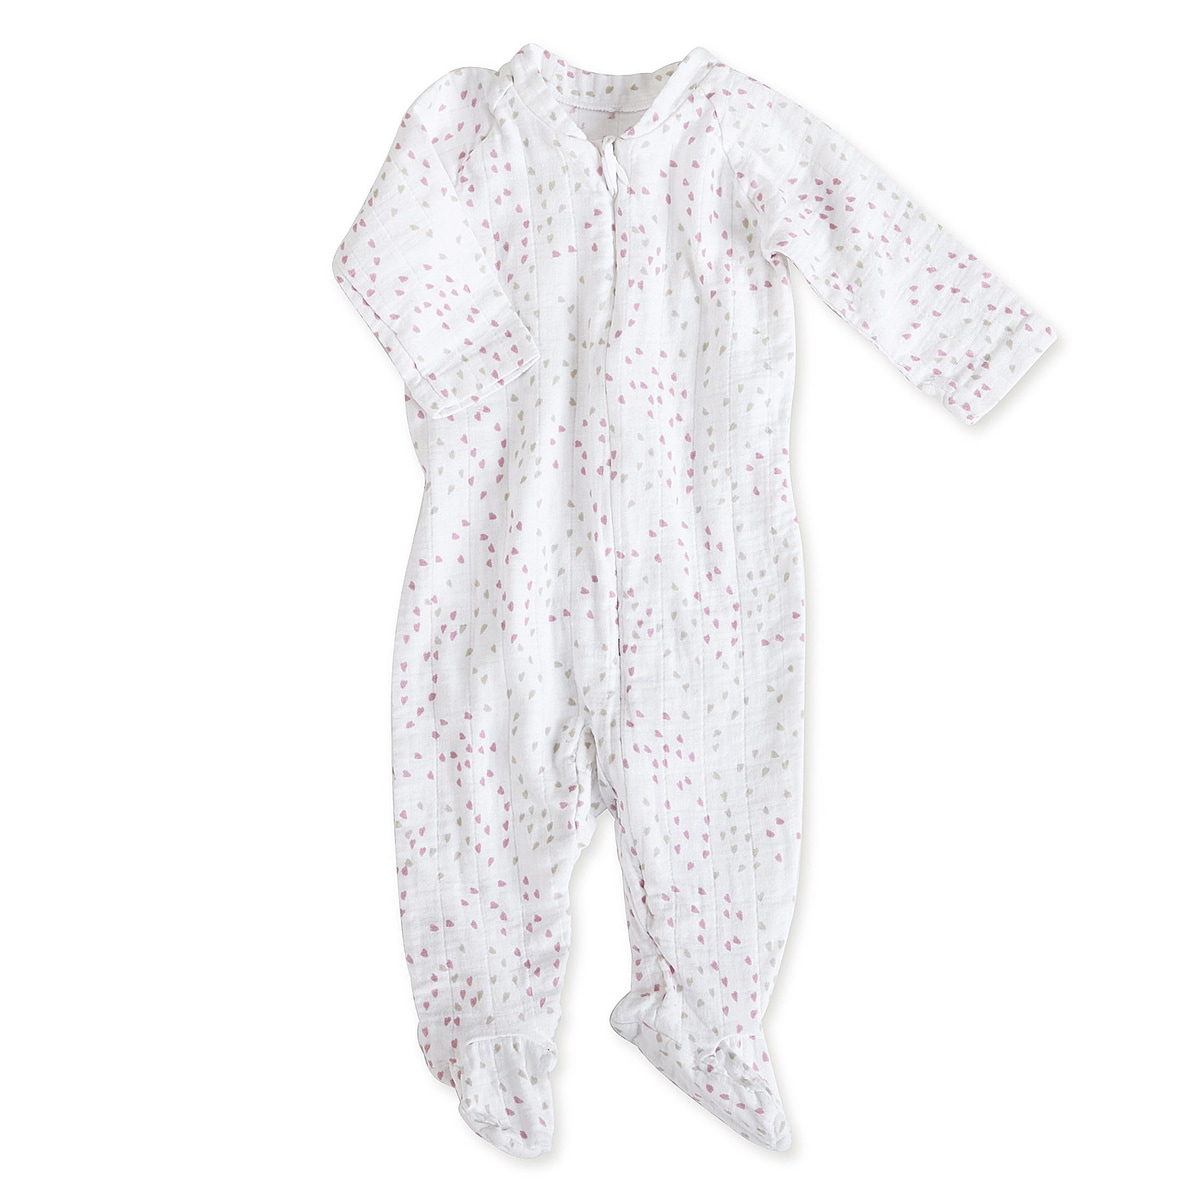 aden + anais Girls 6-9 Months Lovely Mini Hearts Muslin Long-Sleeve Zip One Piece